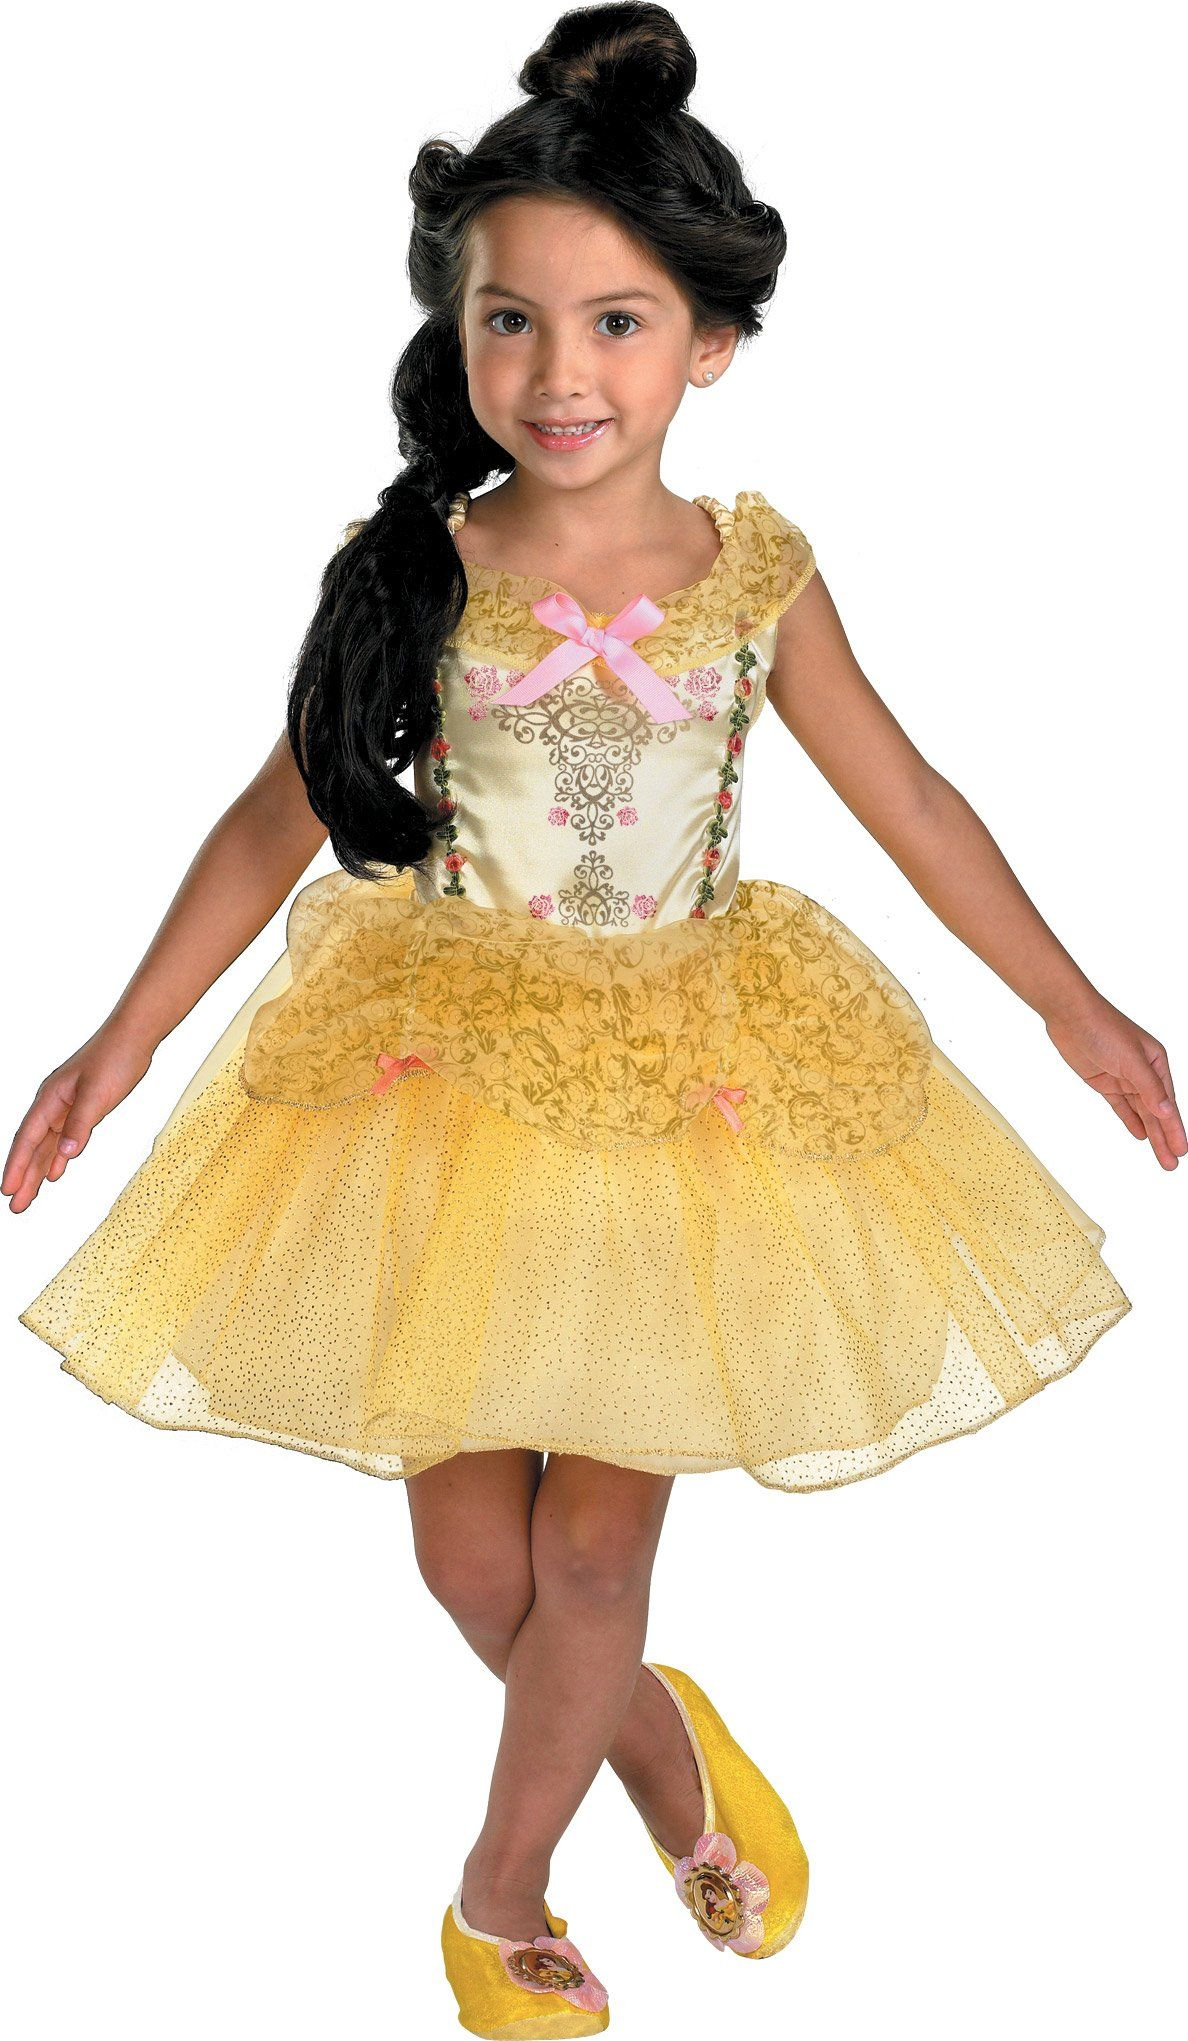 Beauty and the Beast Belle Ballerina Toddler / Child Costume. Princess CostumesGirl CostumesDisney CostumesCostume IdeasHalloween ...  sc 1 st  Pinterest & Pin by Zoey on Disney costumes | Pinterest | Children costumes ...